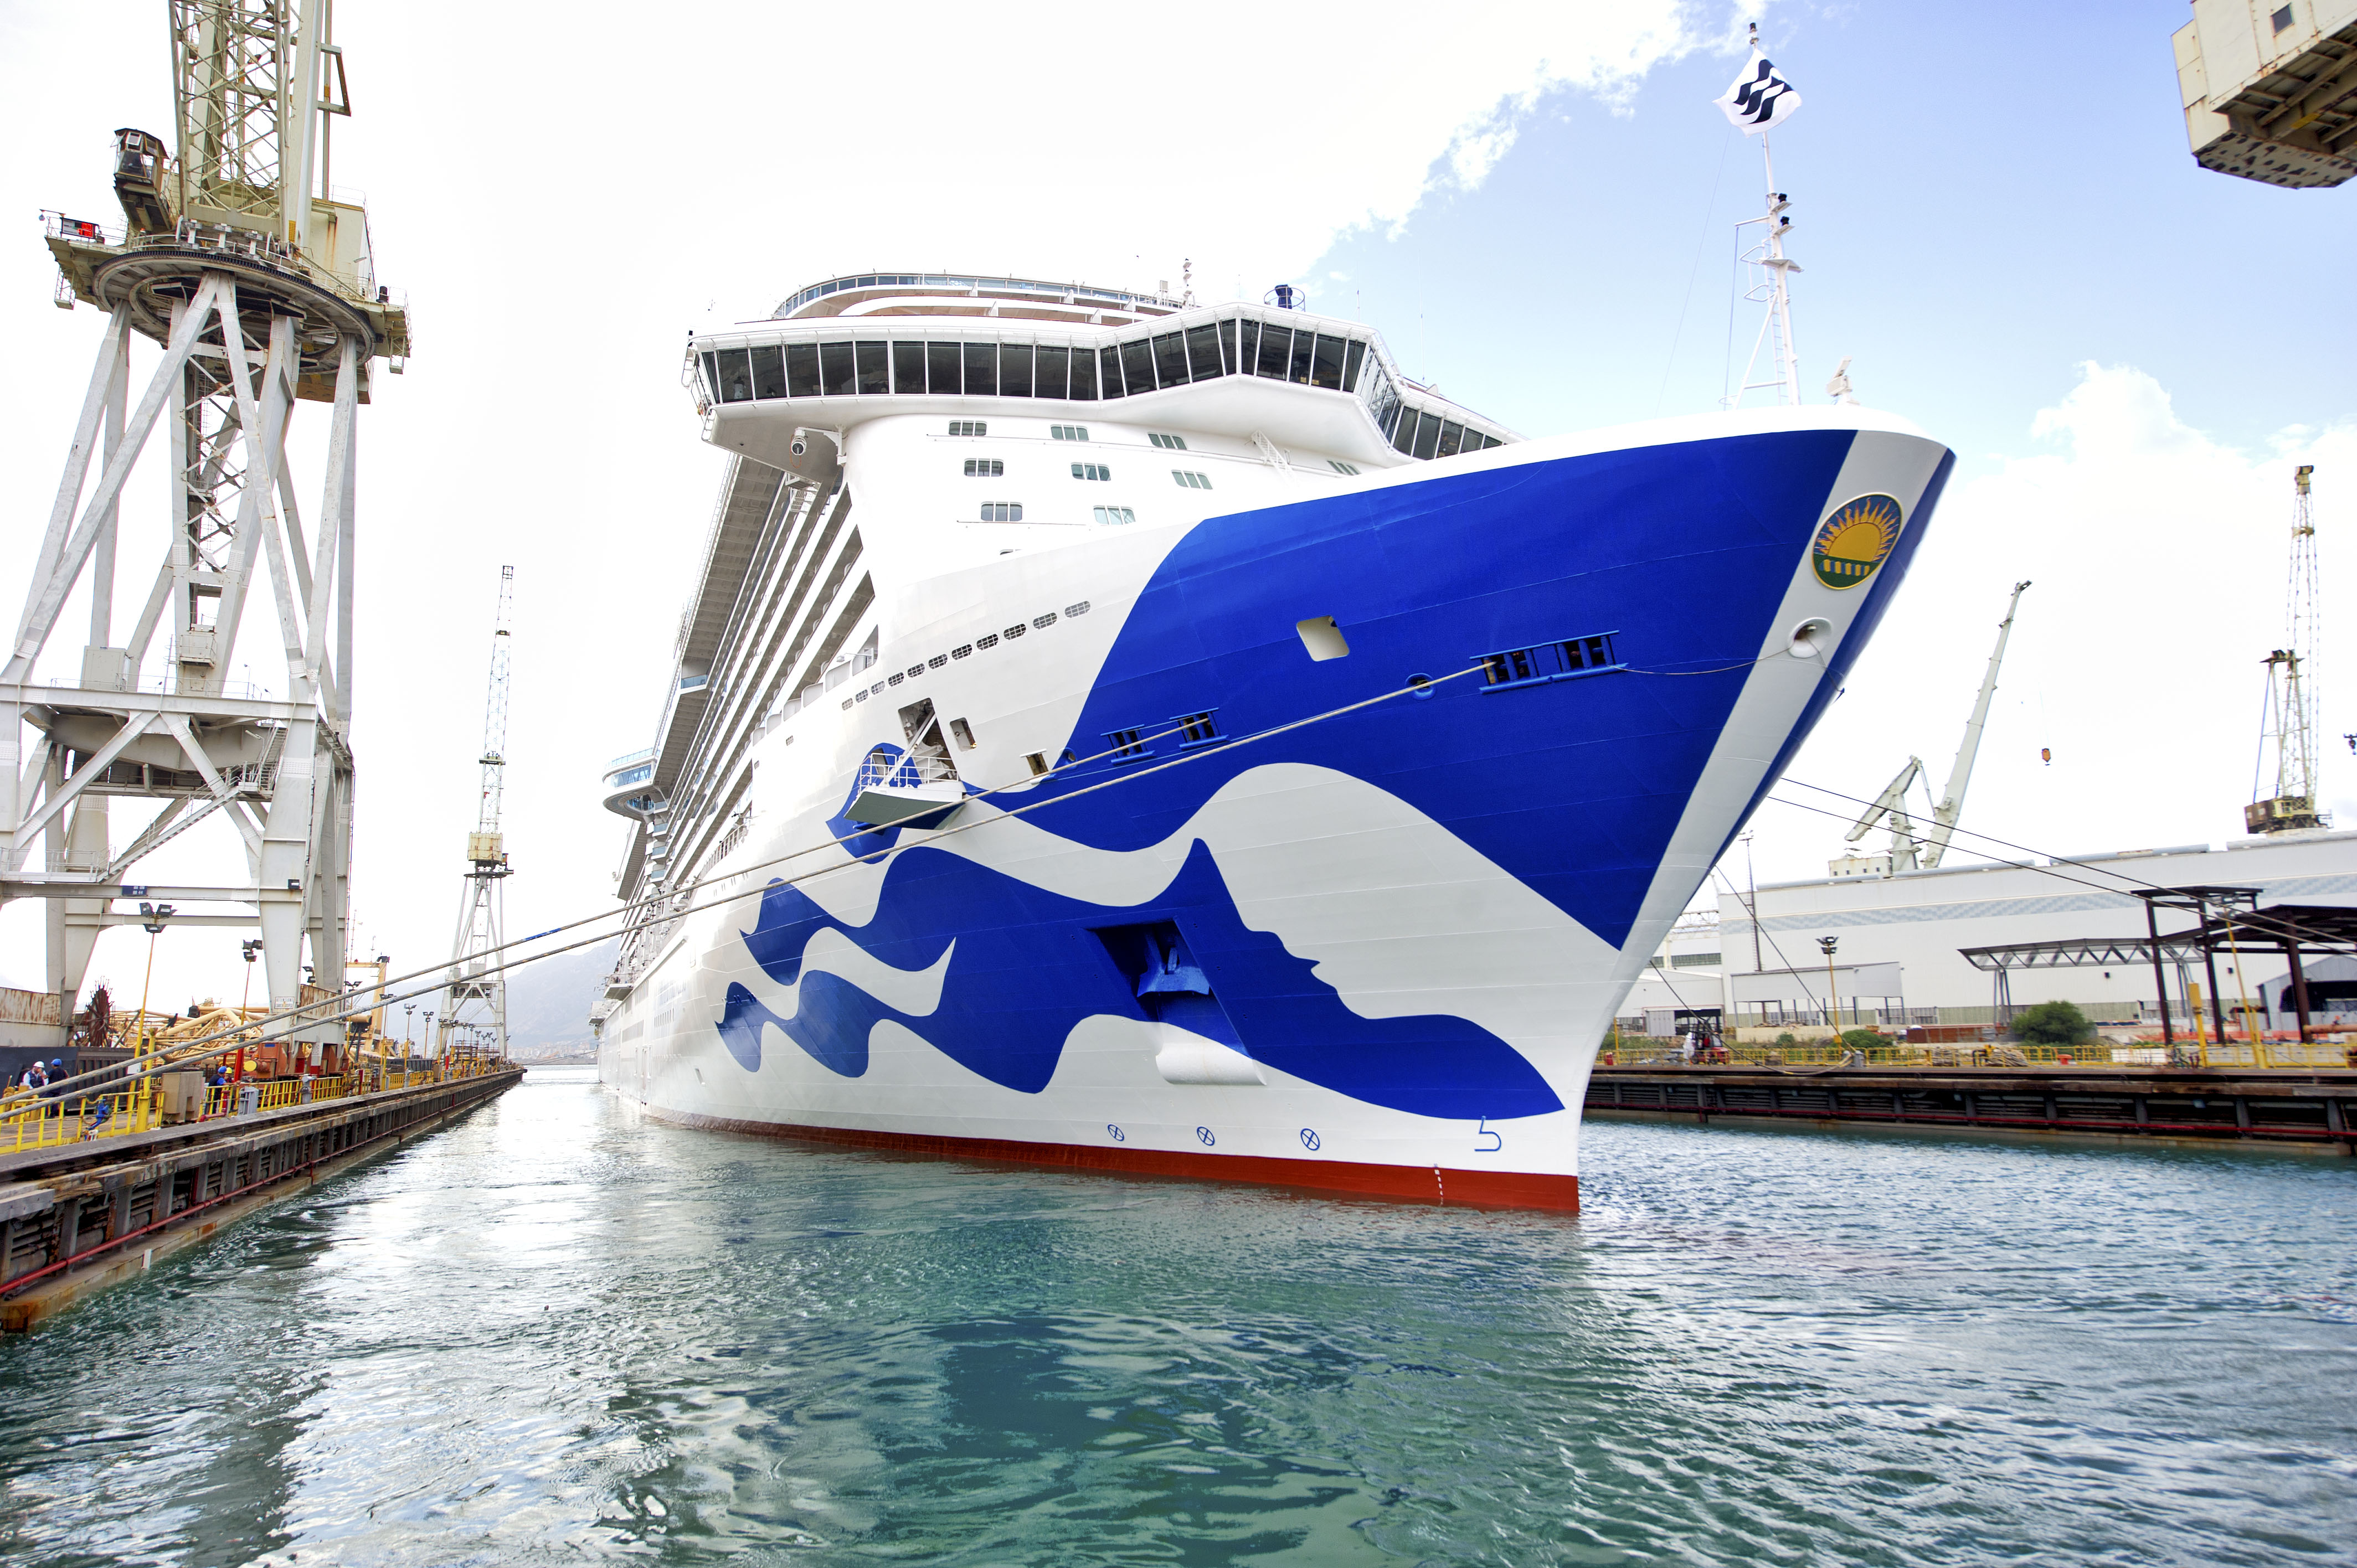 Royal Princess Sets Sail With New Livery Cruise